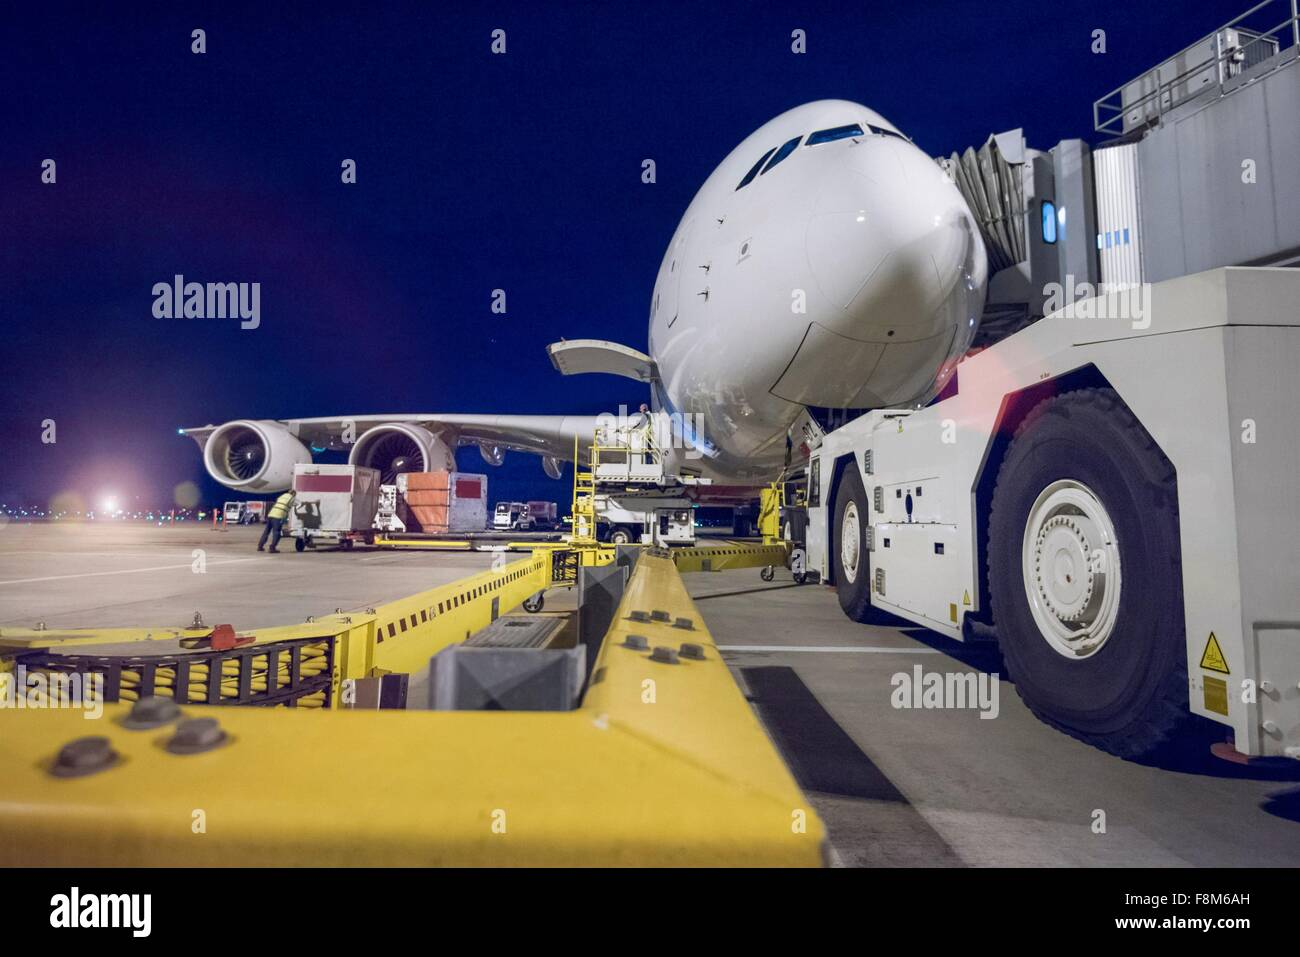 Night over A380 aircraft on stand at airport Stock Photo